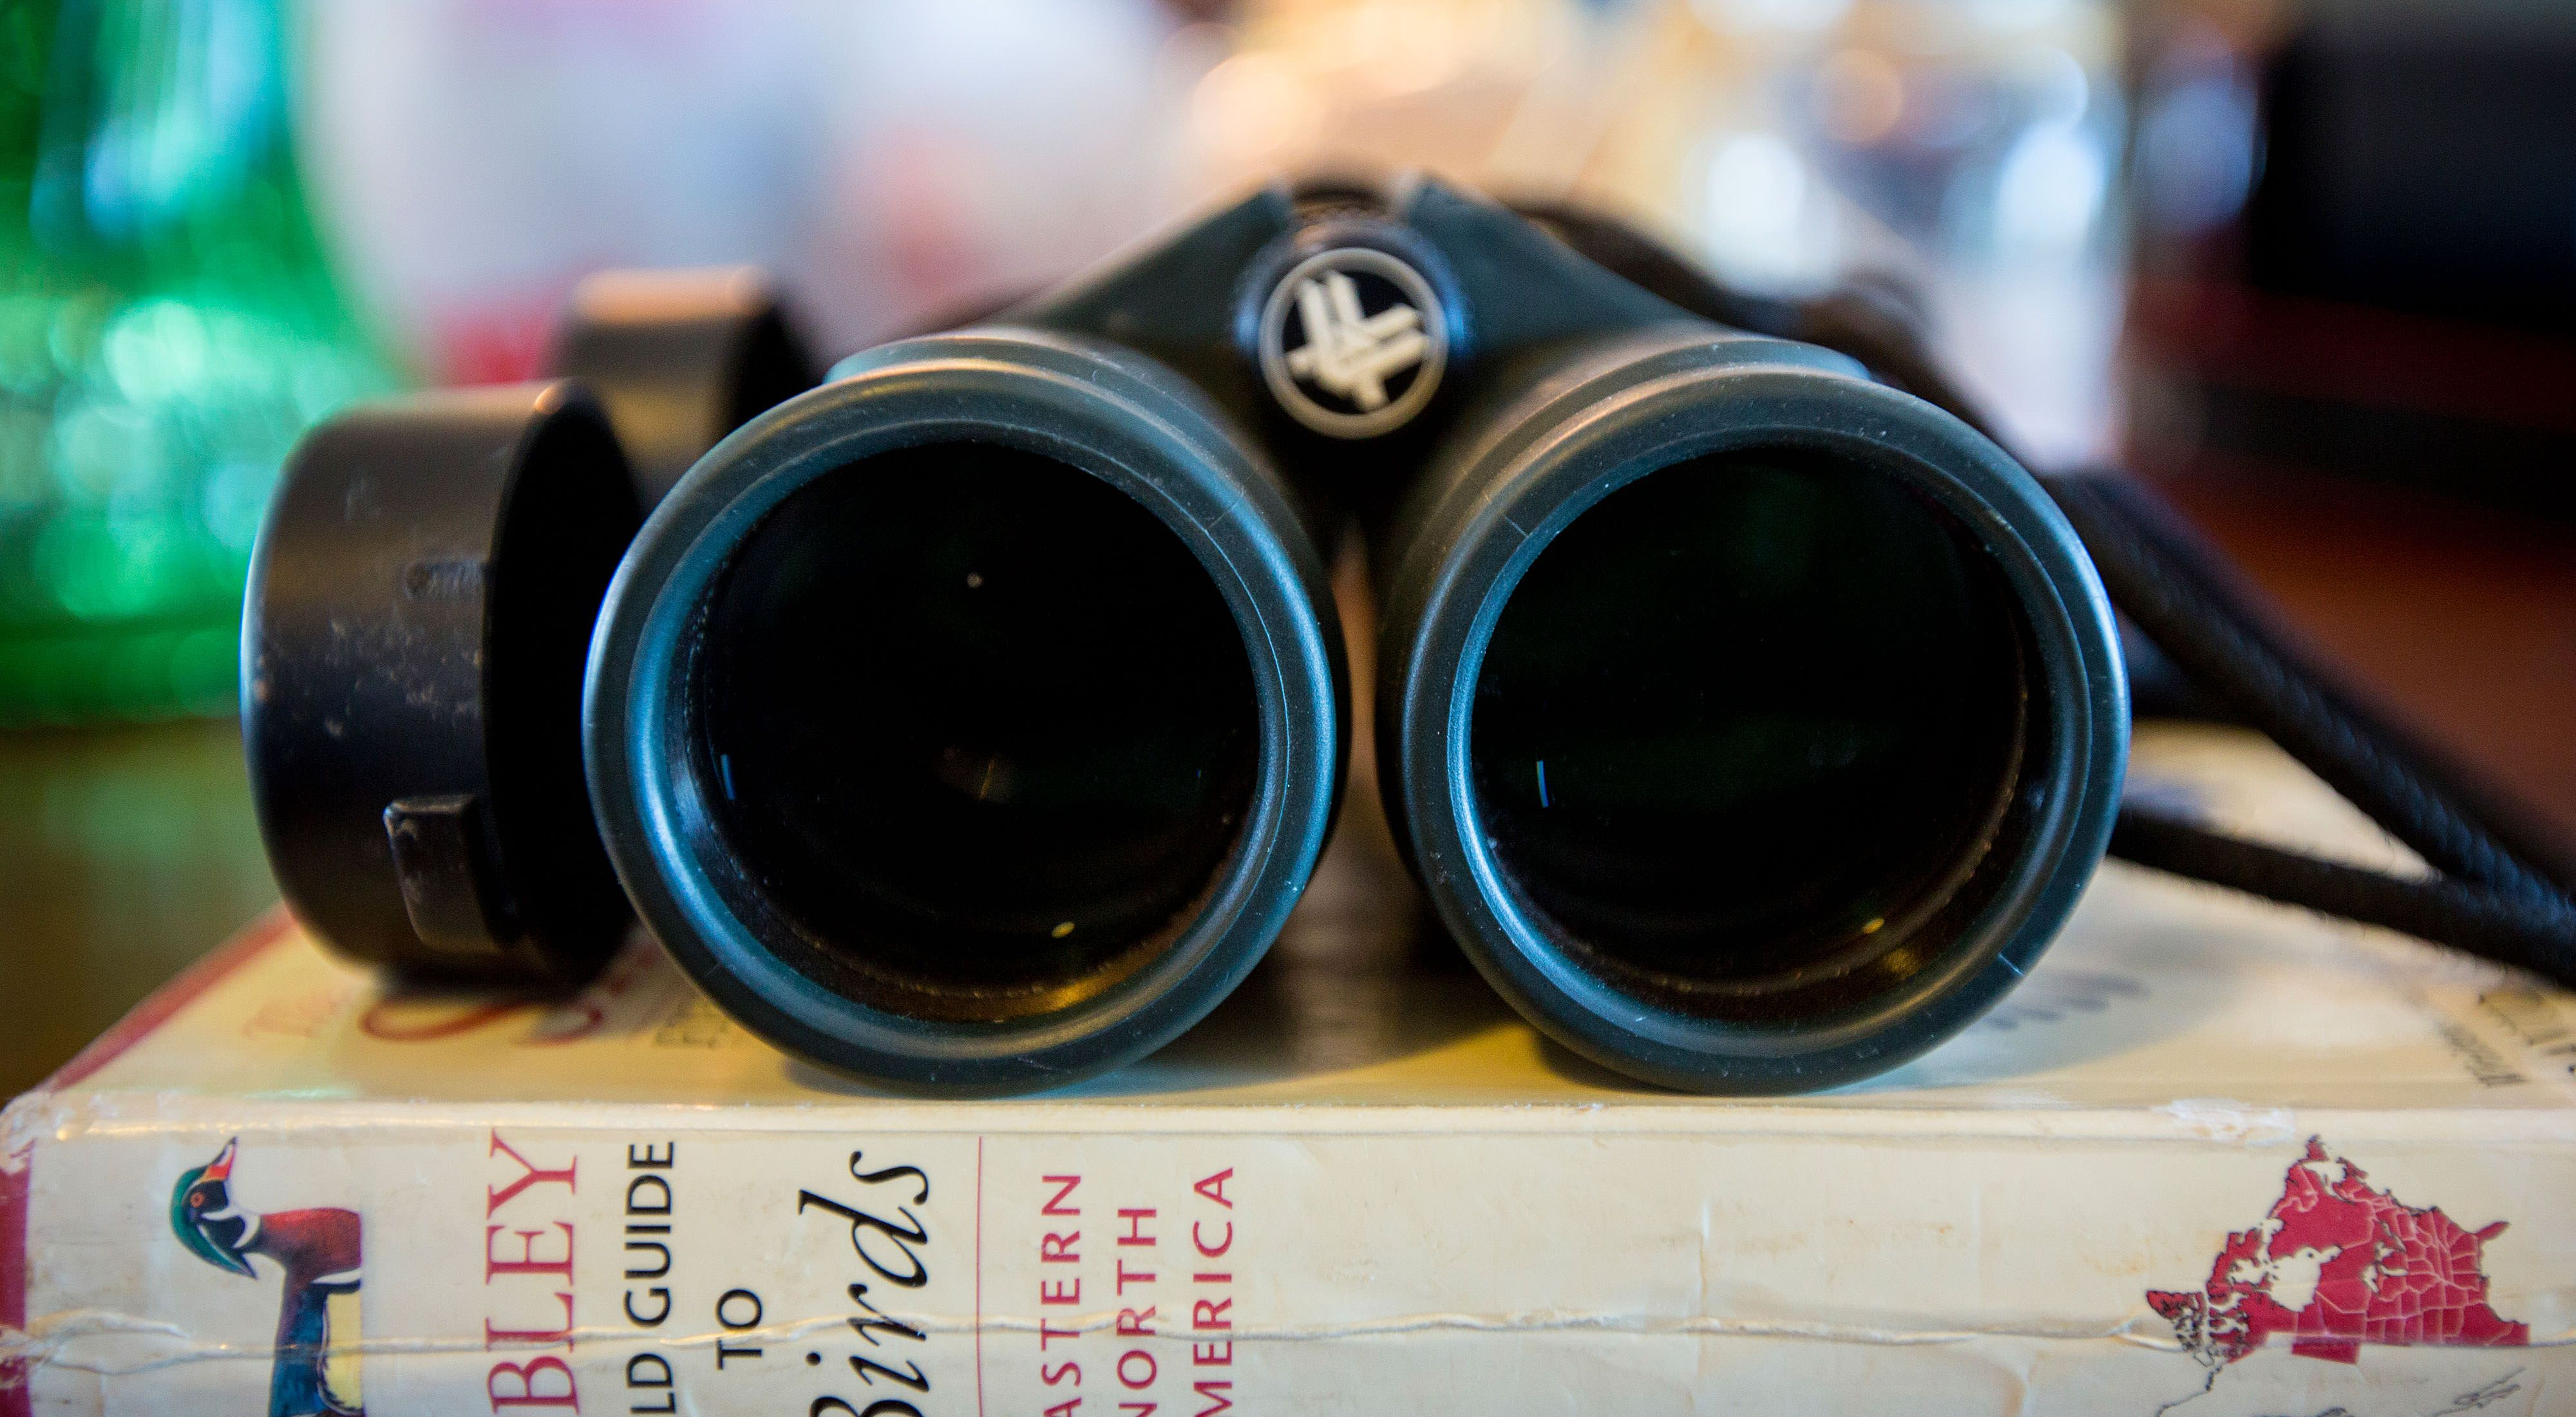 A pair of binoculars sitting on a stack of books, with the large lenses facing the viewer.